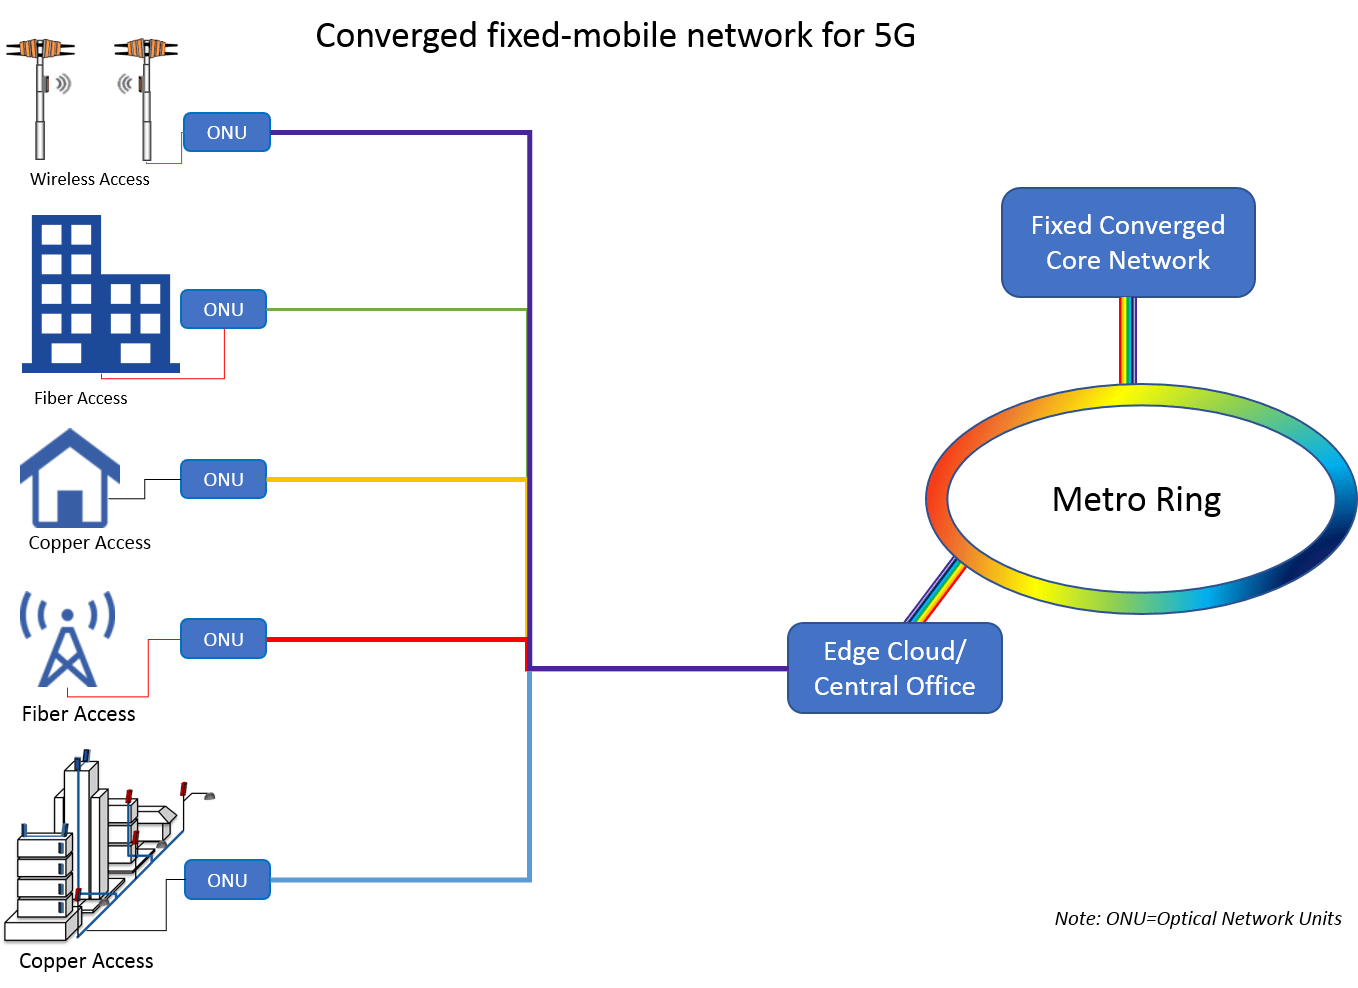 ftth network diagram when to use sequence the role of fiber and testing in 5g viavi perspectives